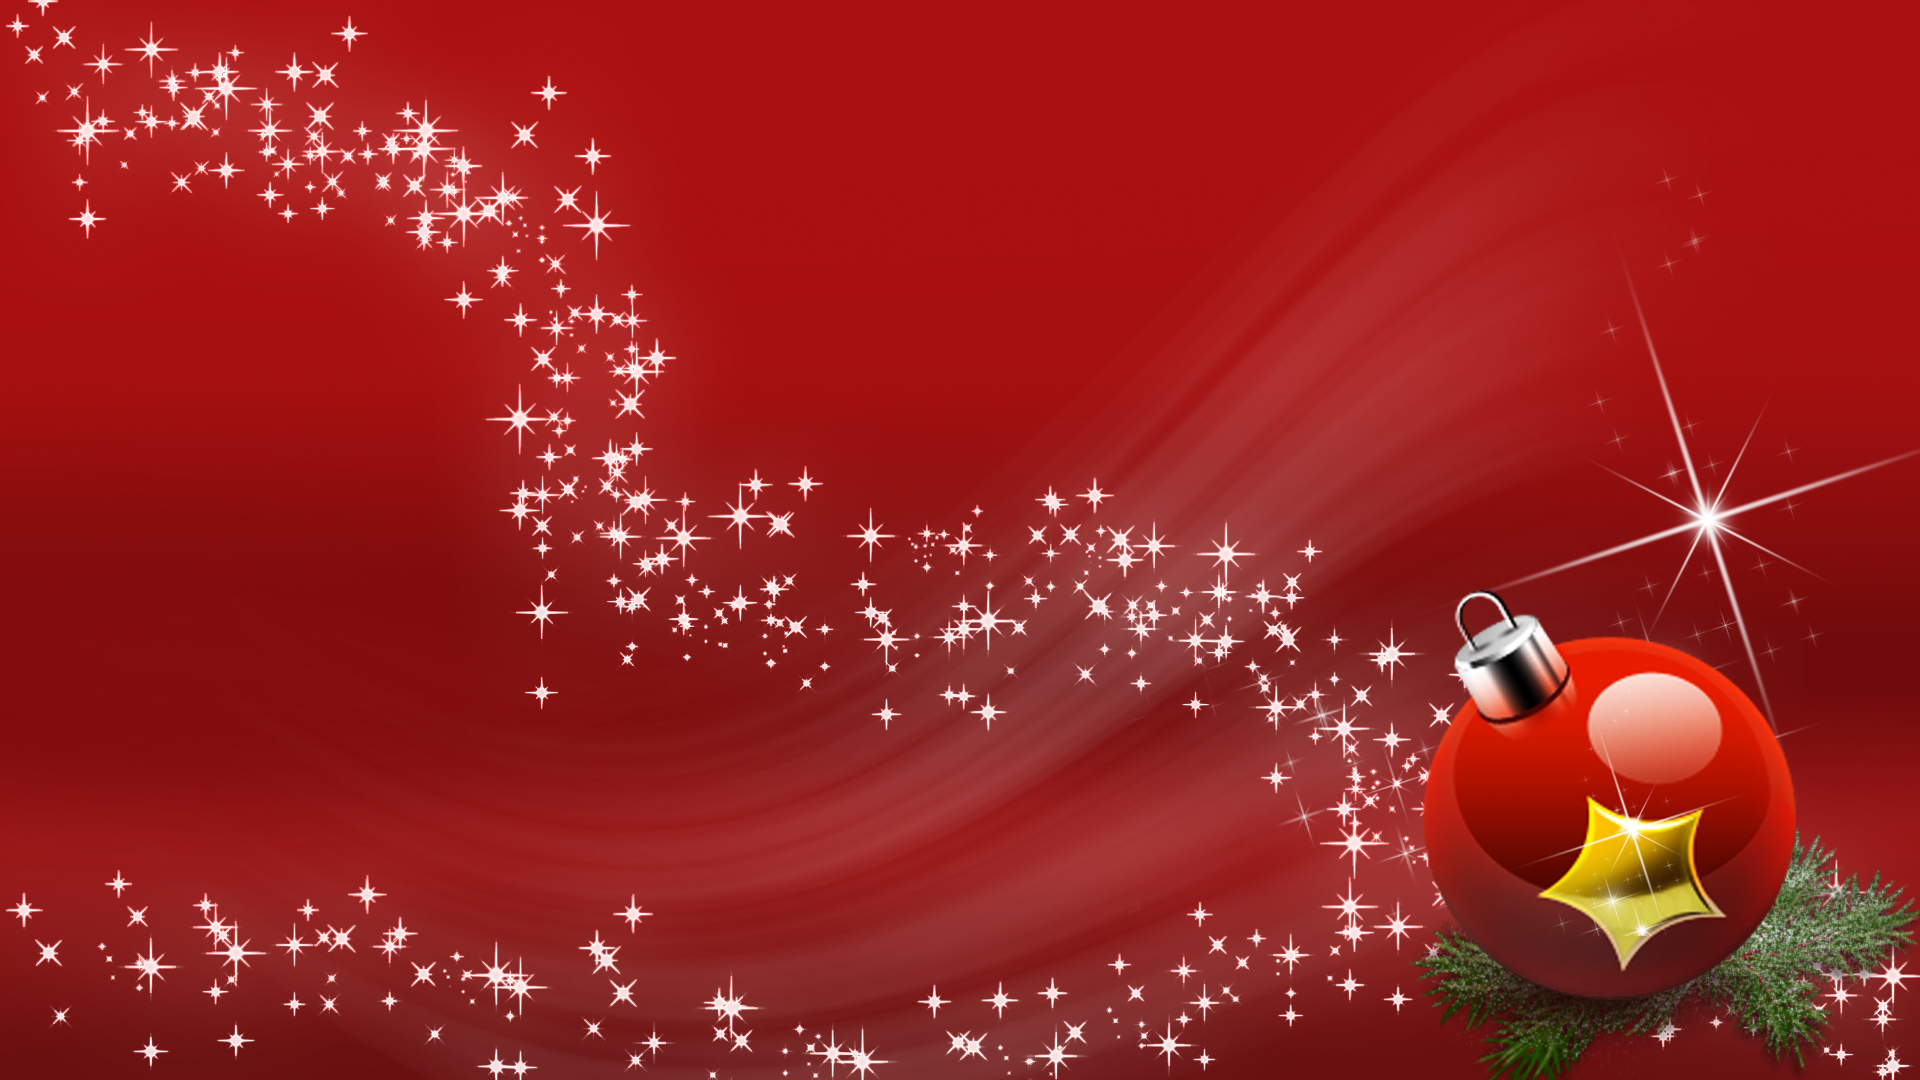 Christmas Red.Christmas Red 2012 By Frankief On Deviantart